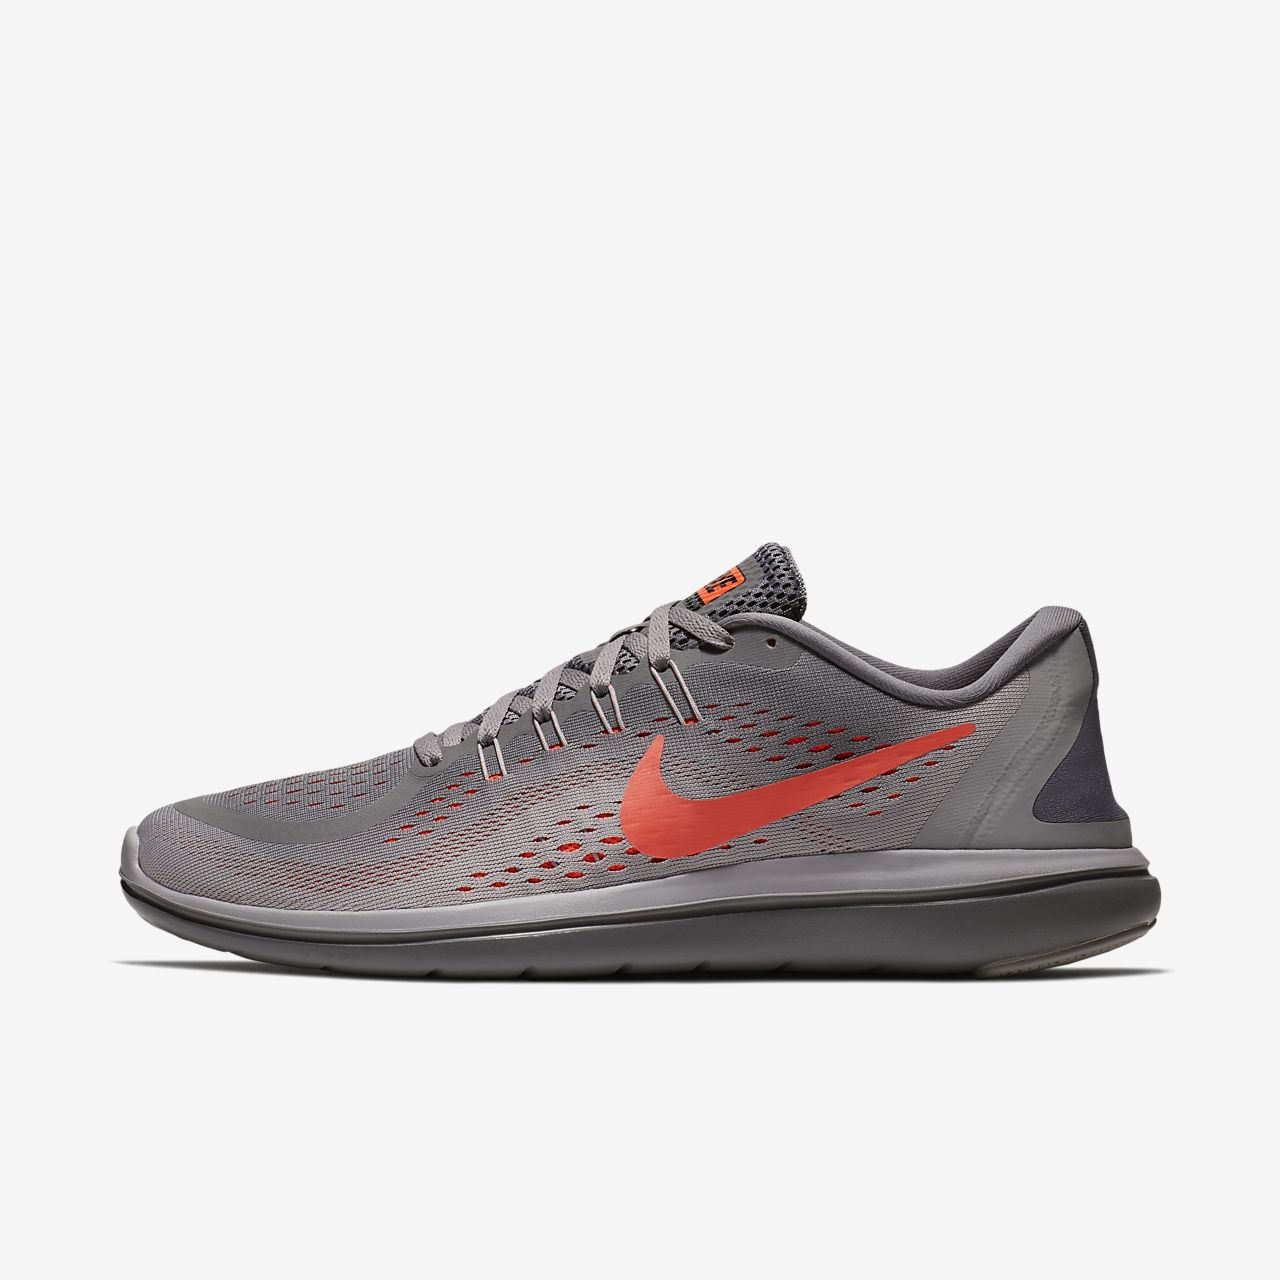 Shopping 217003 Nike Free Run Women Gray Blue Shoes